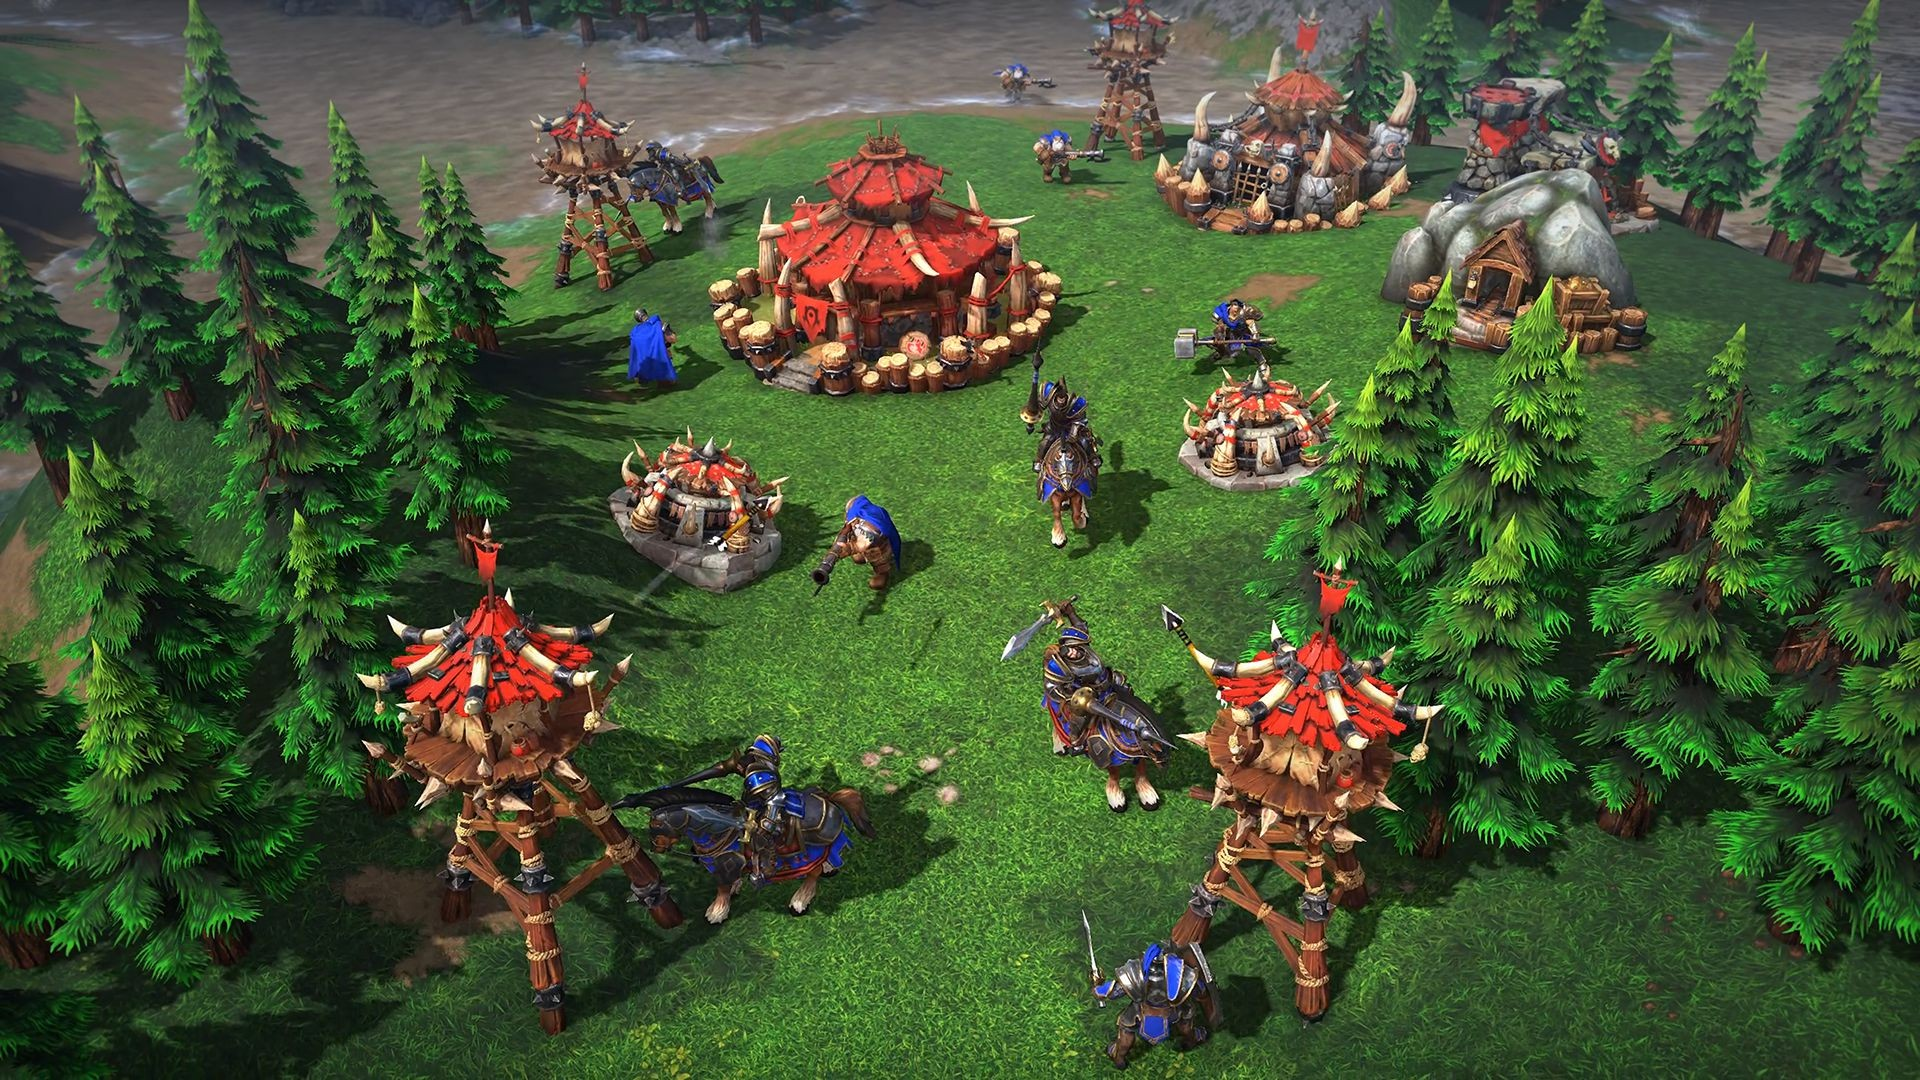 Blizzard's Warcraft 3 is finally getting the remastered treatment